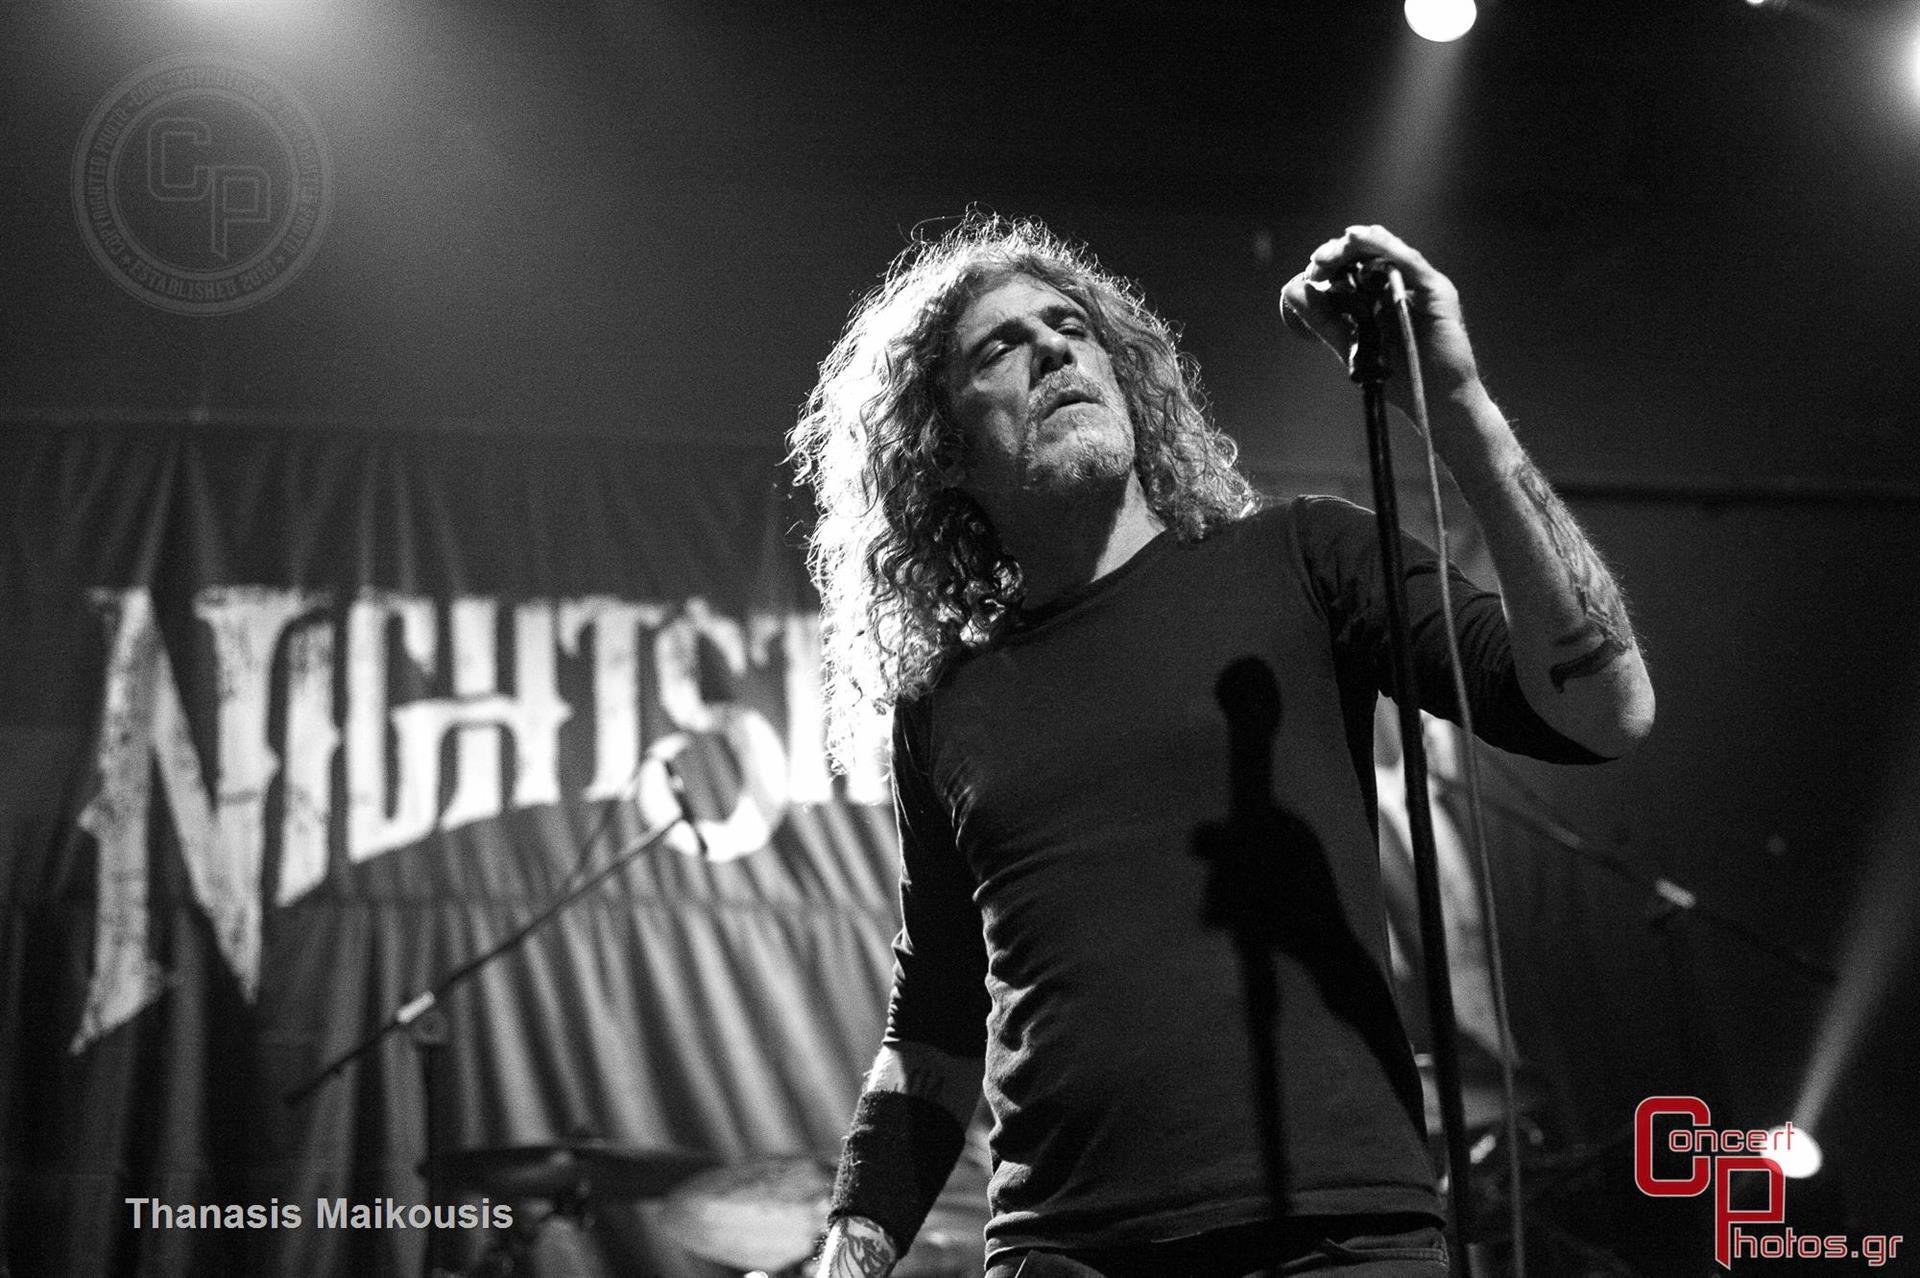 Nightstalker Three Holy Strangers-Nightstalker-Gagarin-April-2015 photographer: Thanasis Maikousis - ConcertPhotos - 20150425_2243_52